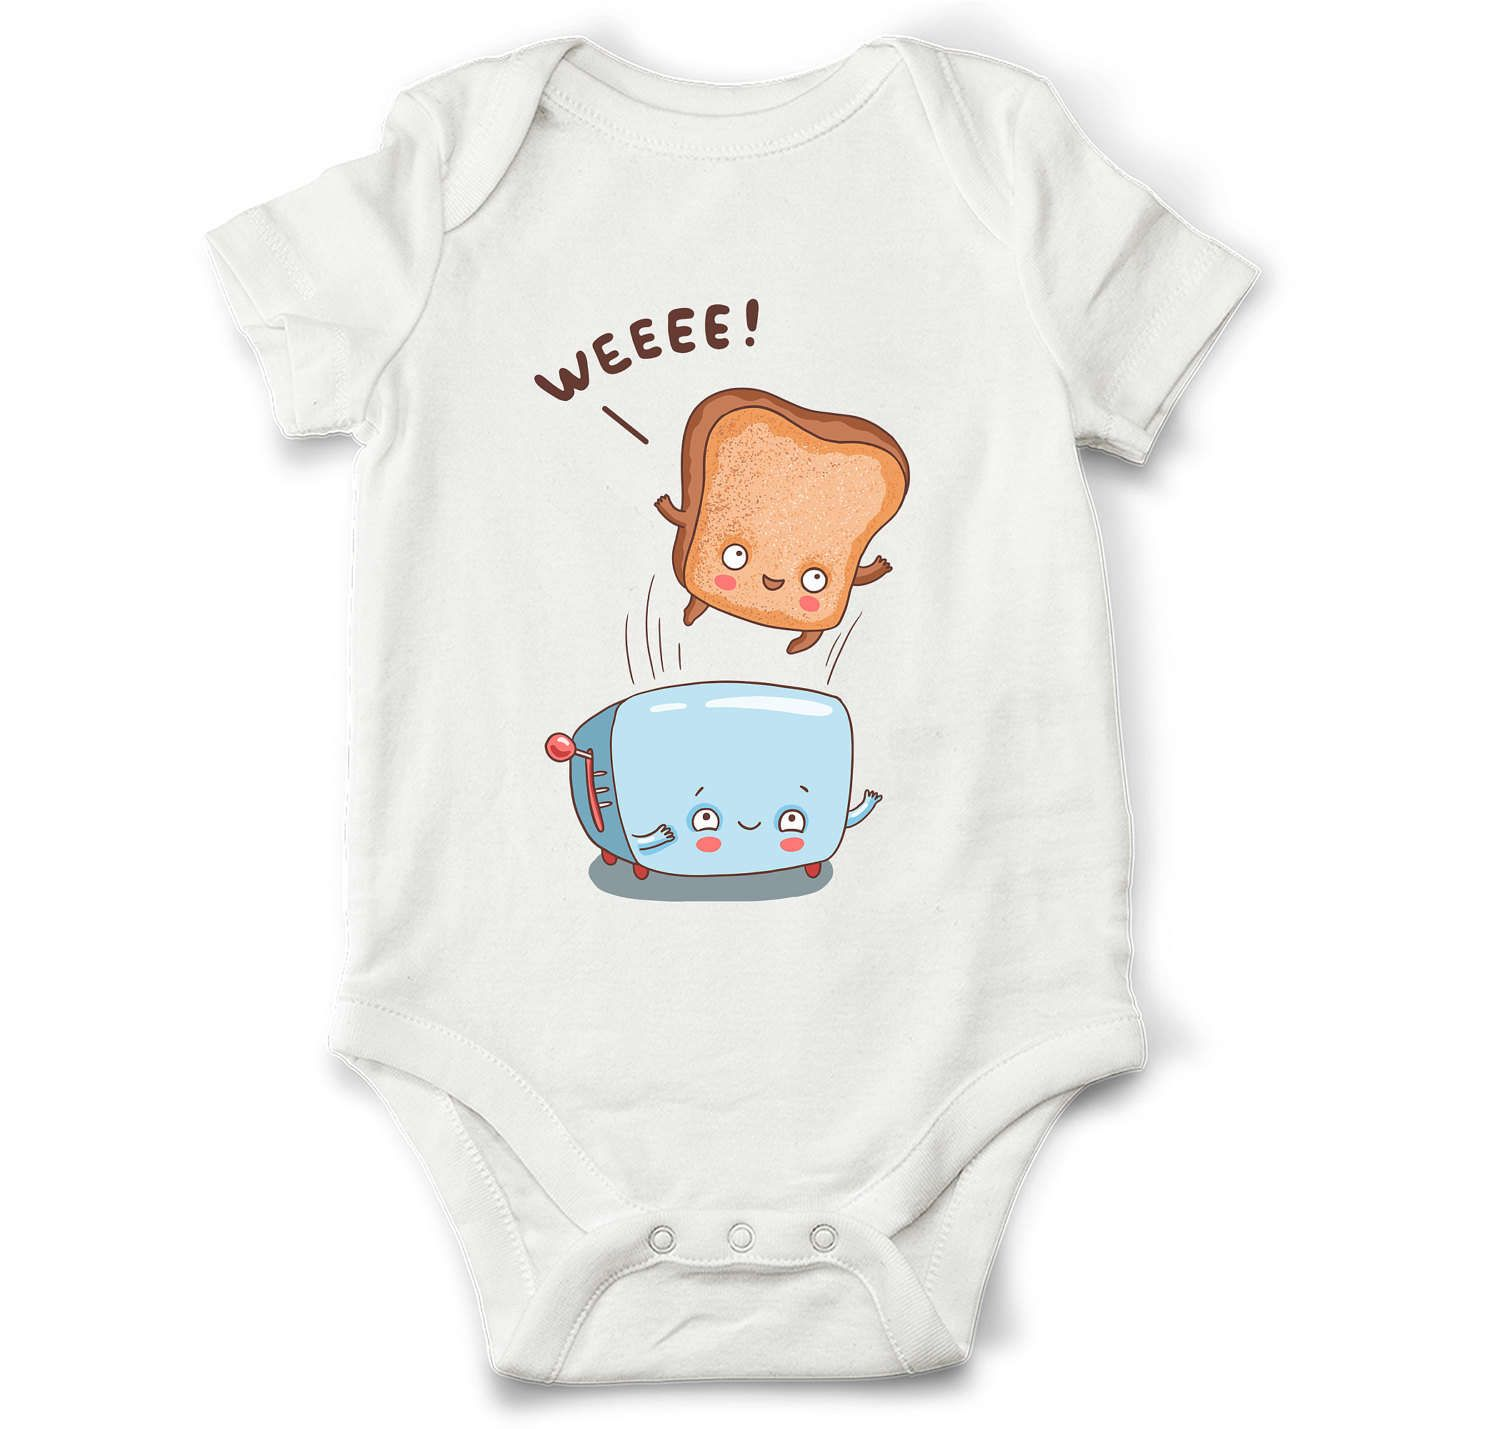 Cute baby bodysuit - Toaster and bread, unique baby gift, cute